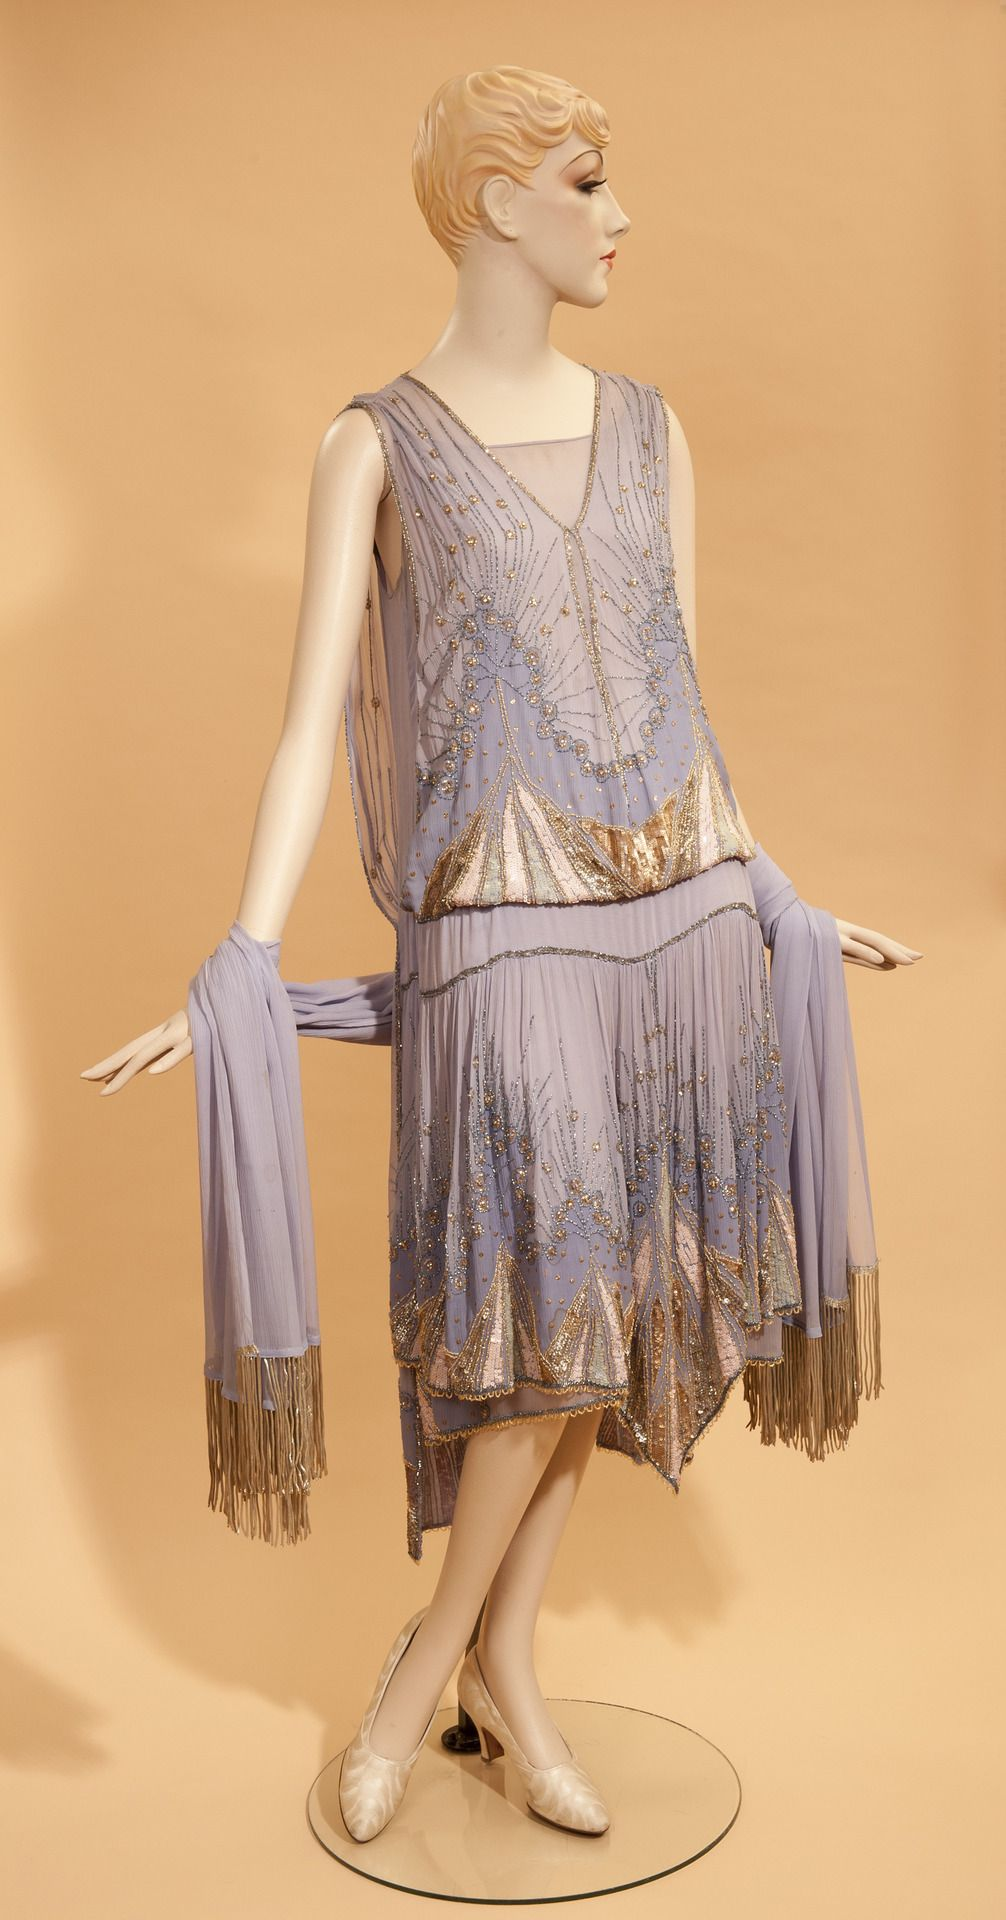 Fashionable Art: Apparel from the 1920s and 1930s ...